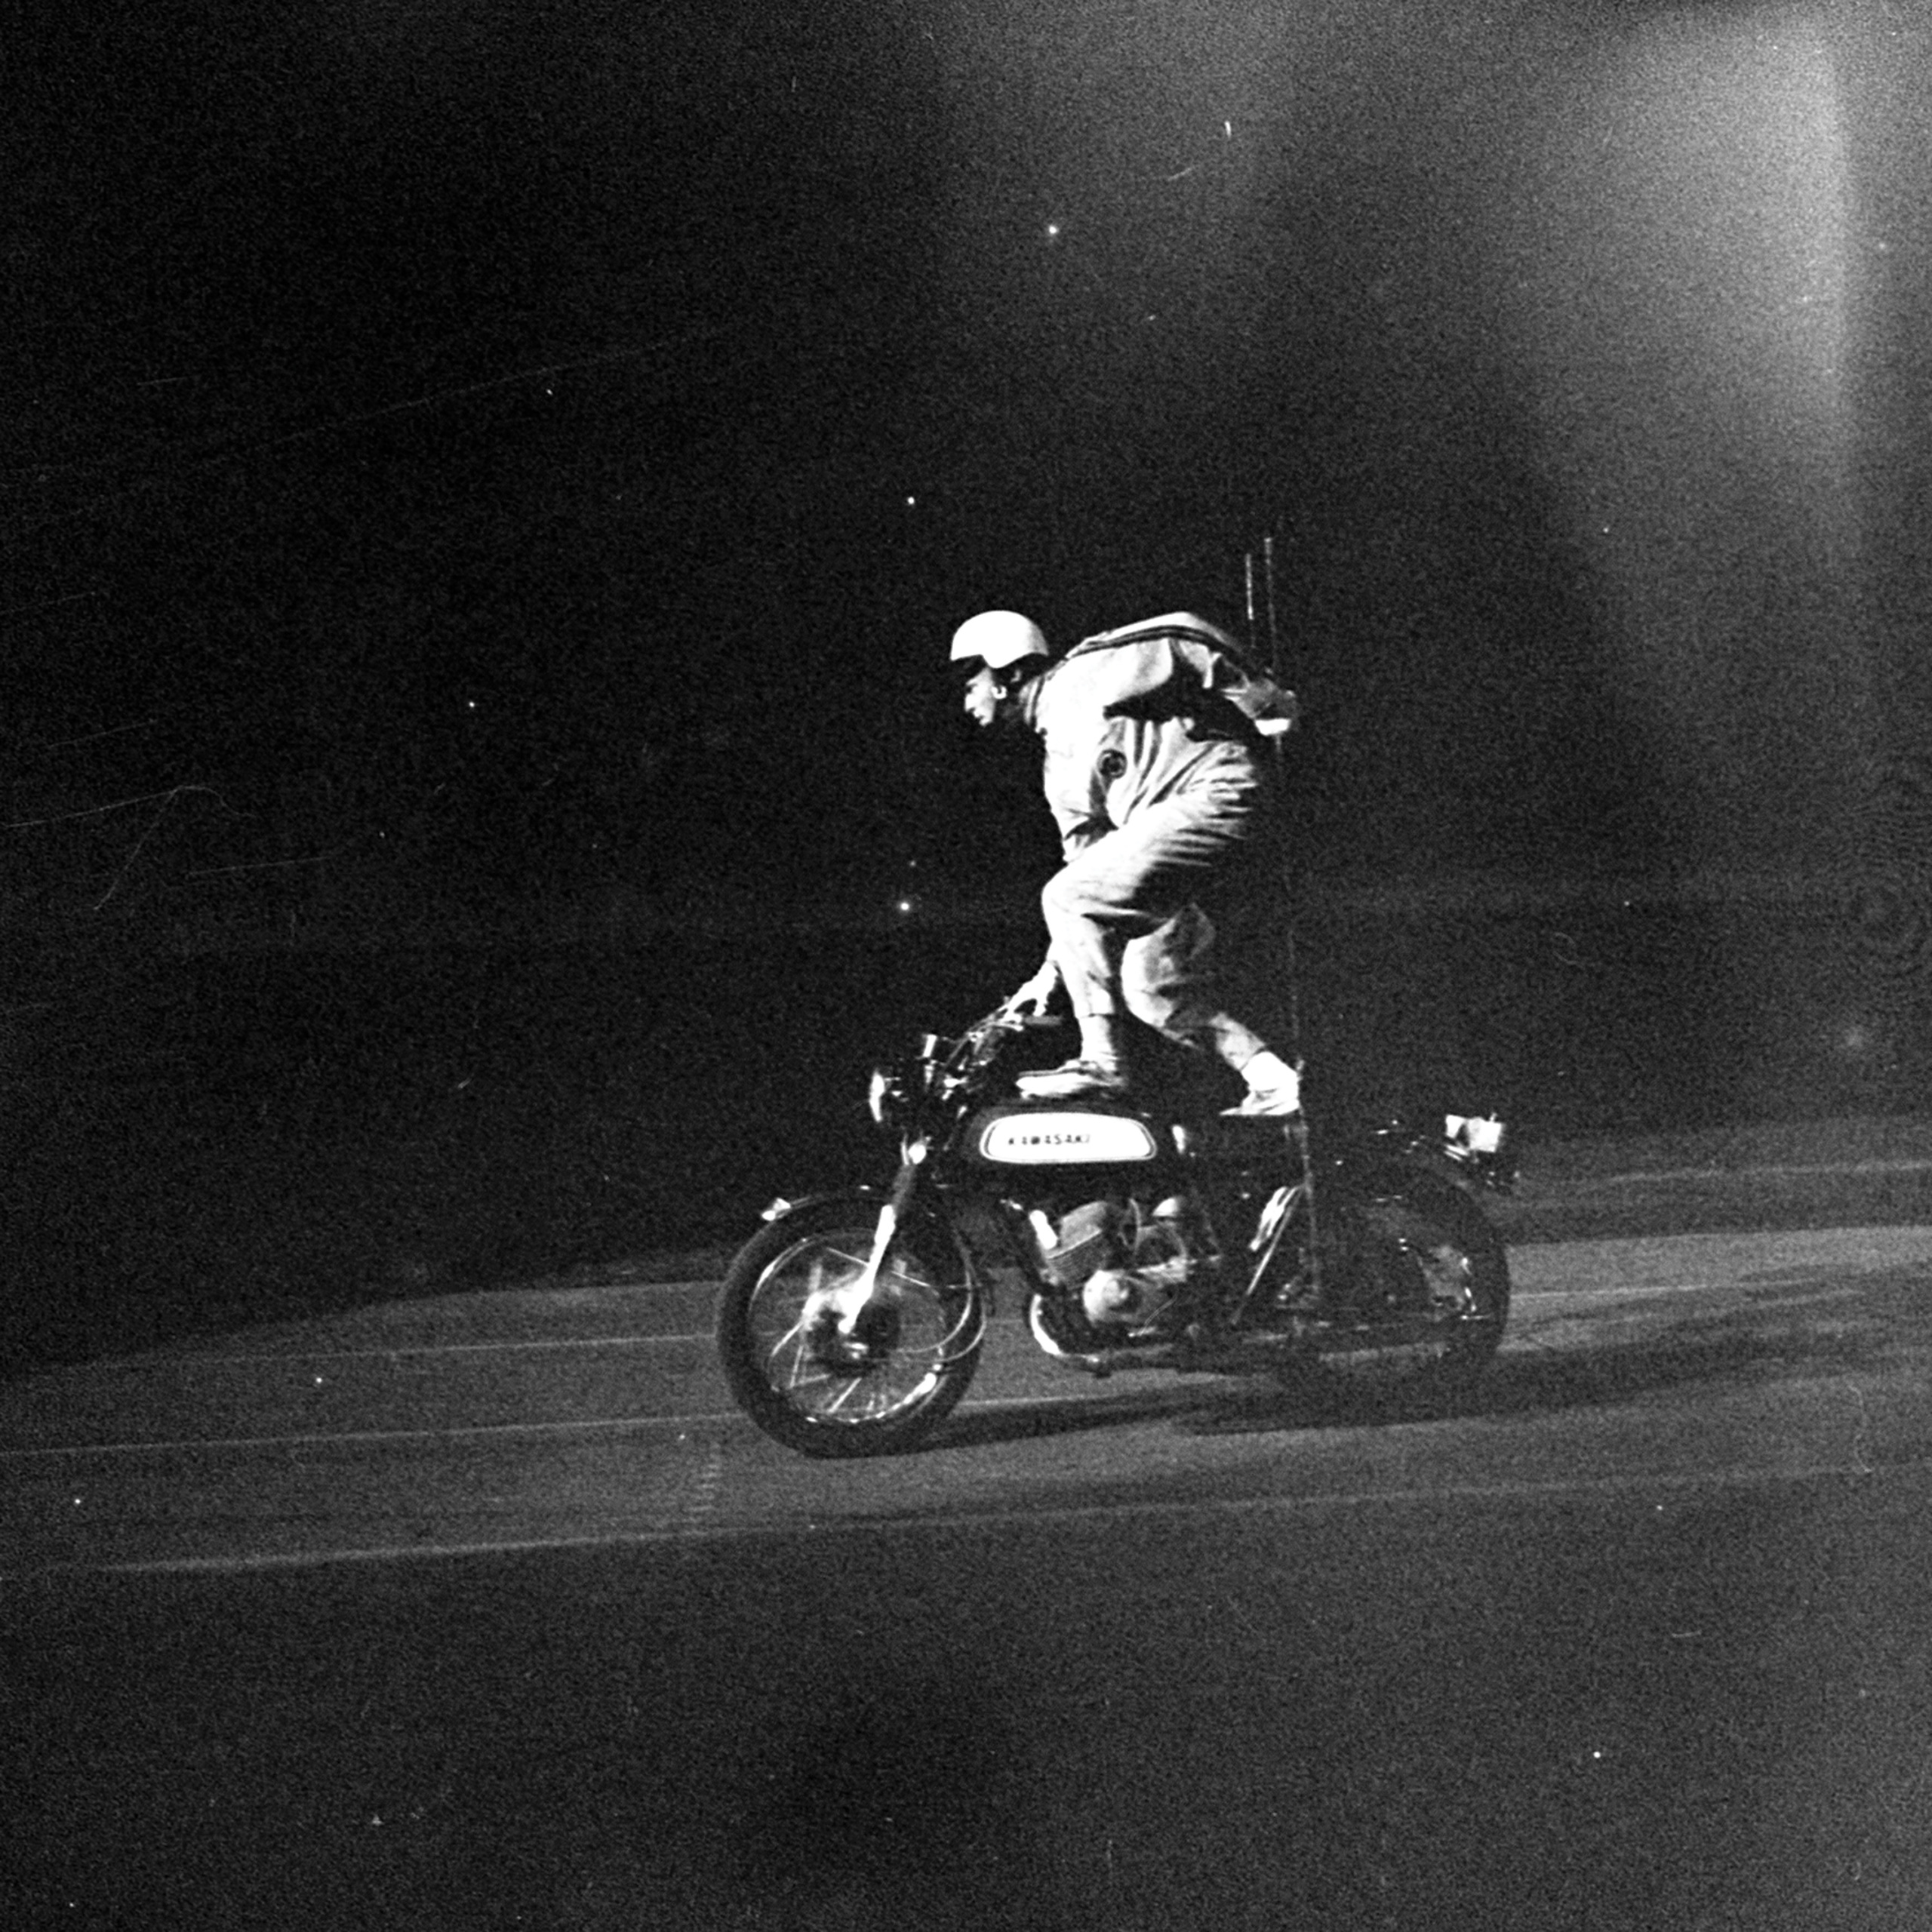 Motorcycle Stuntman at CNE Grandstand, August 28, 1971, Canadian National Exhibition Archives, MG5-F2942-I9. Courtesy of the CNEA